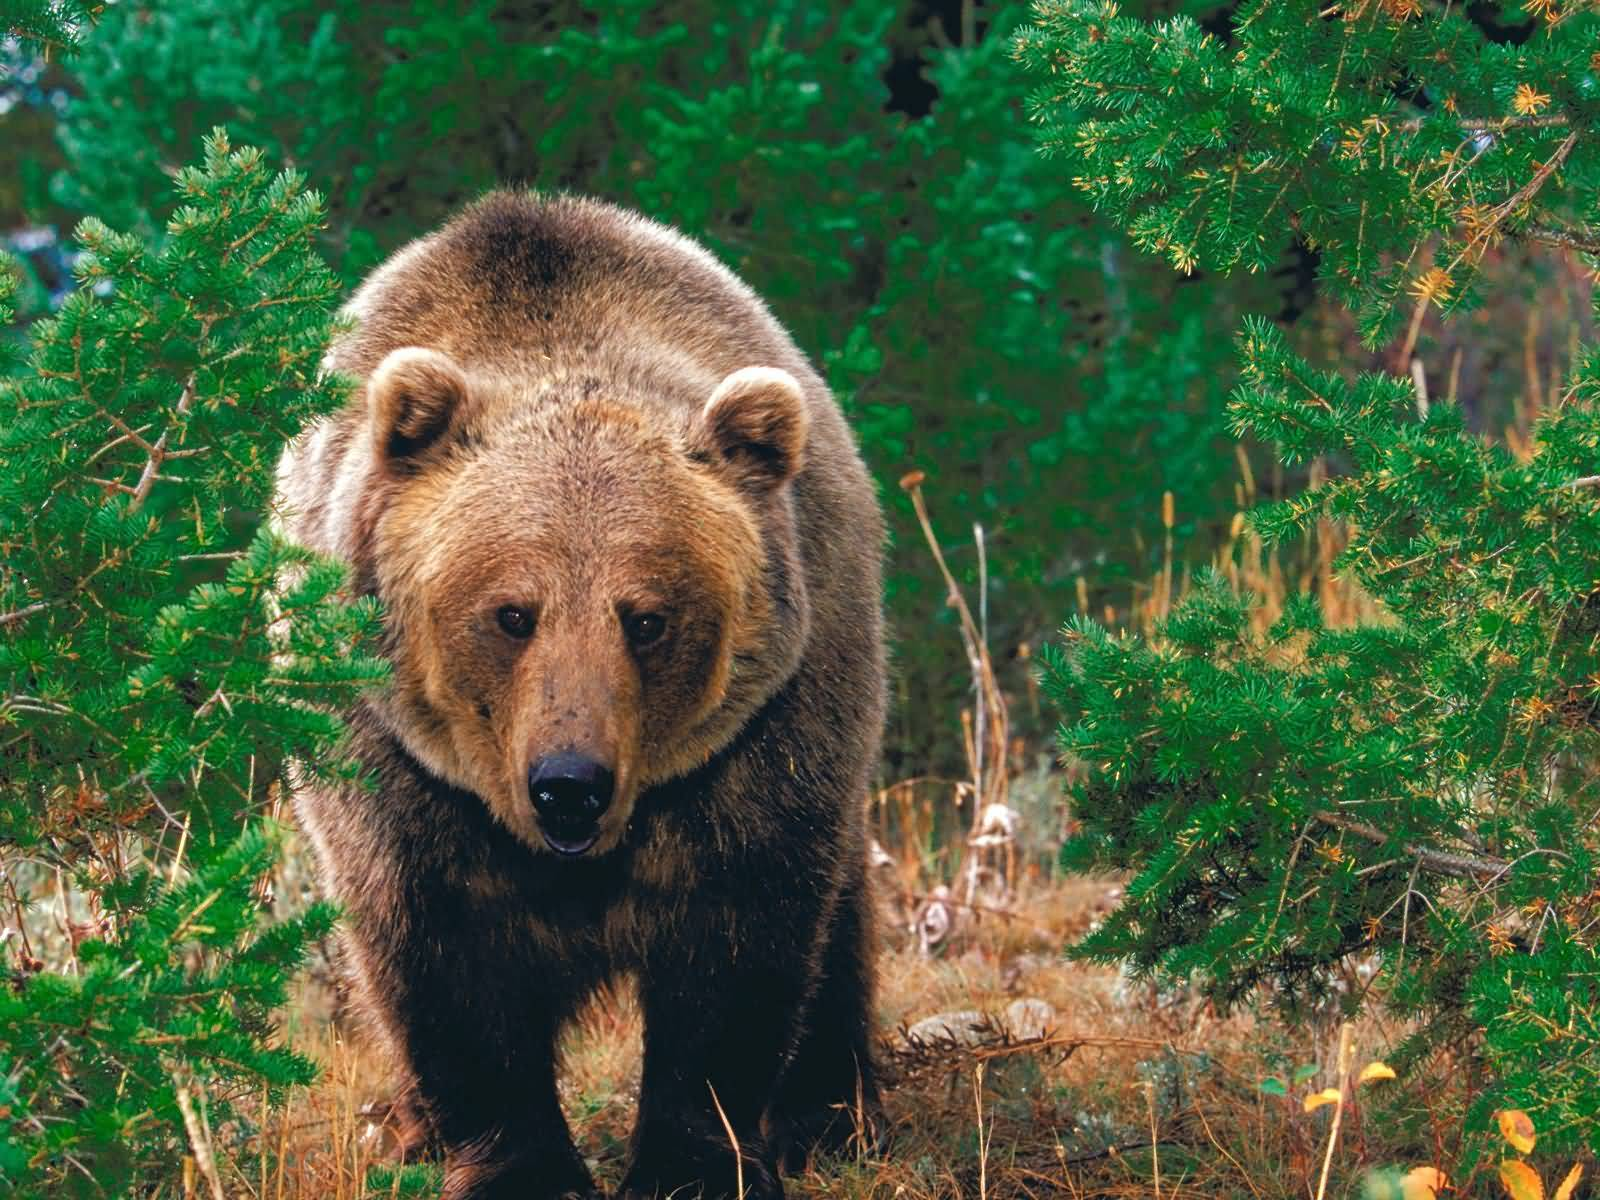 Forest_Wild_Grizzly_Bear-1600x1200.jpg